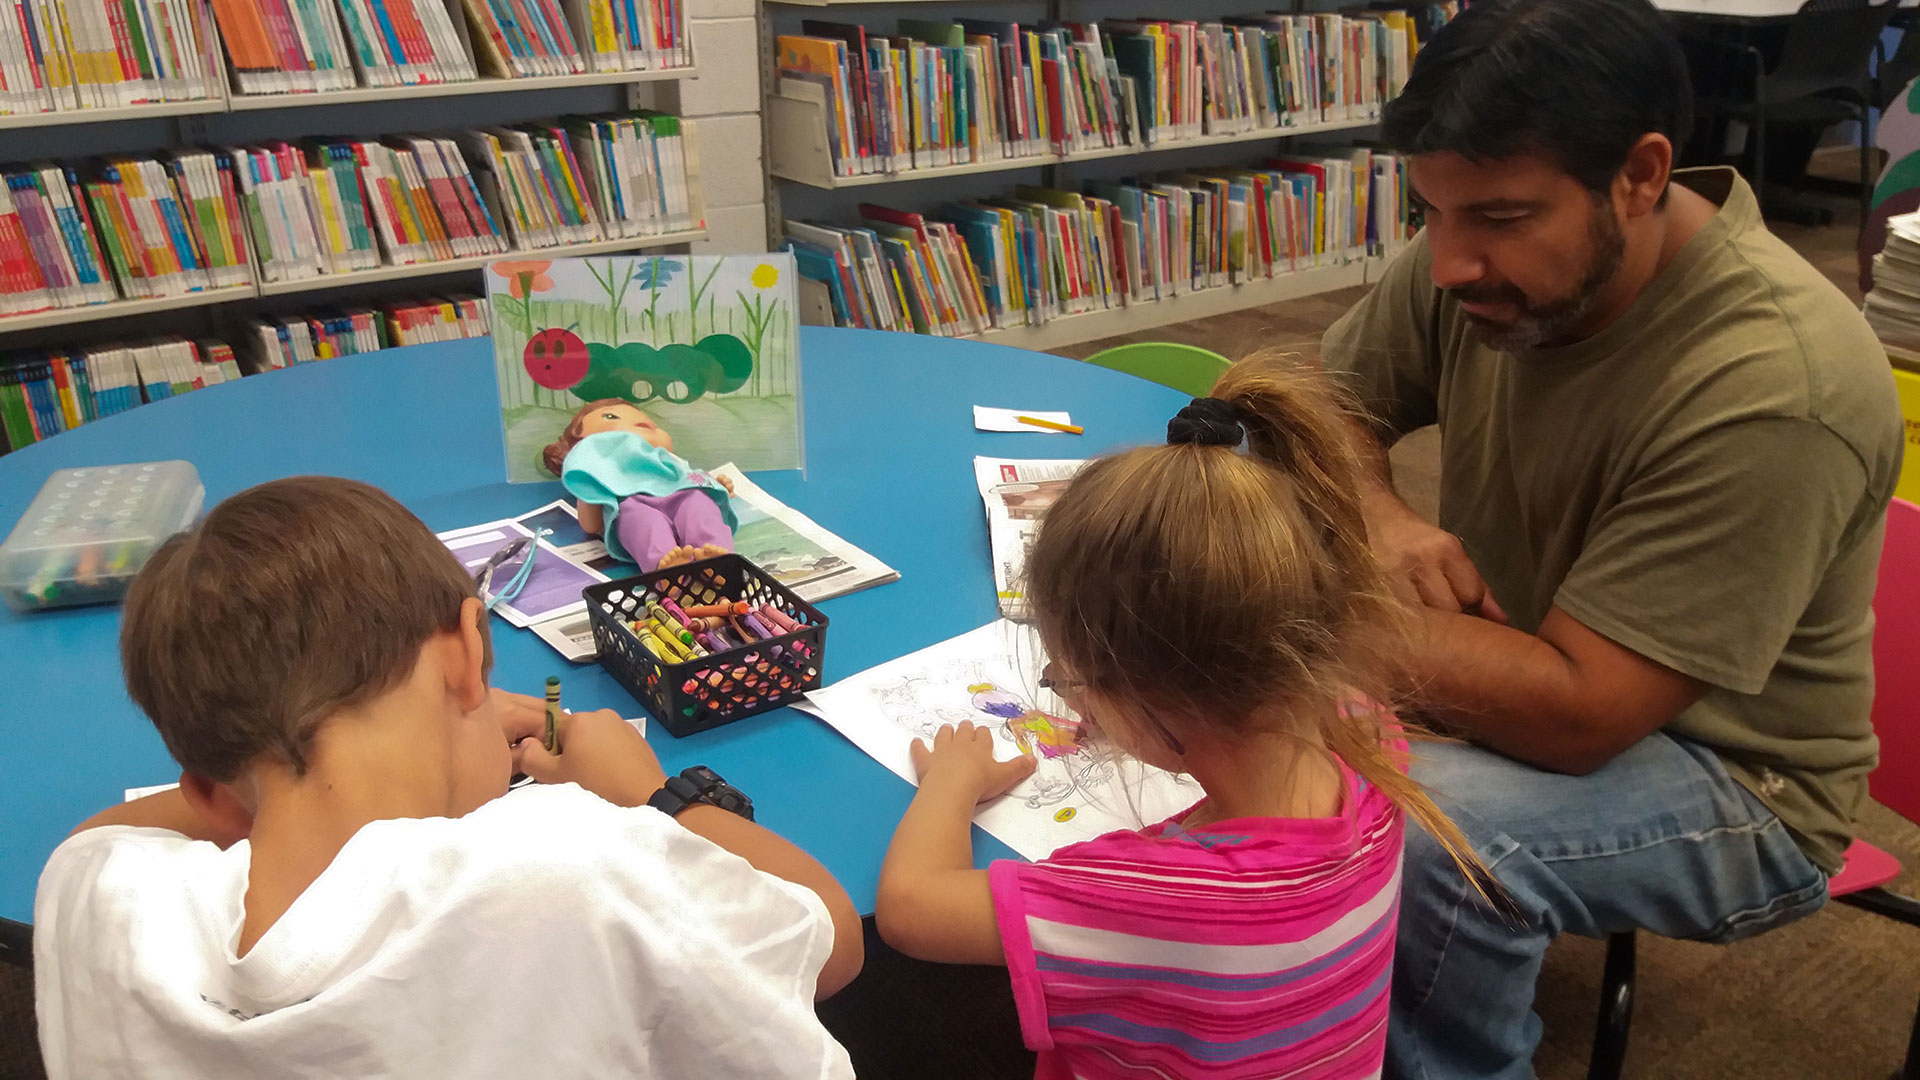 Man and kids in library unsized